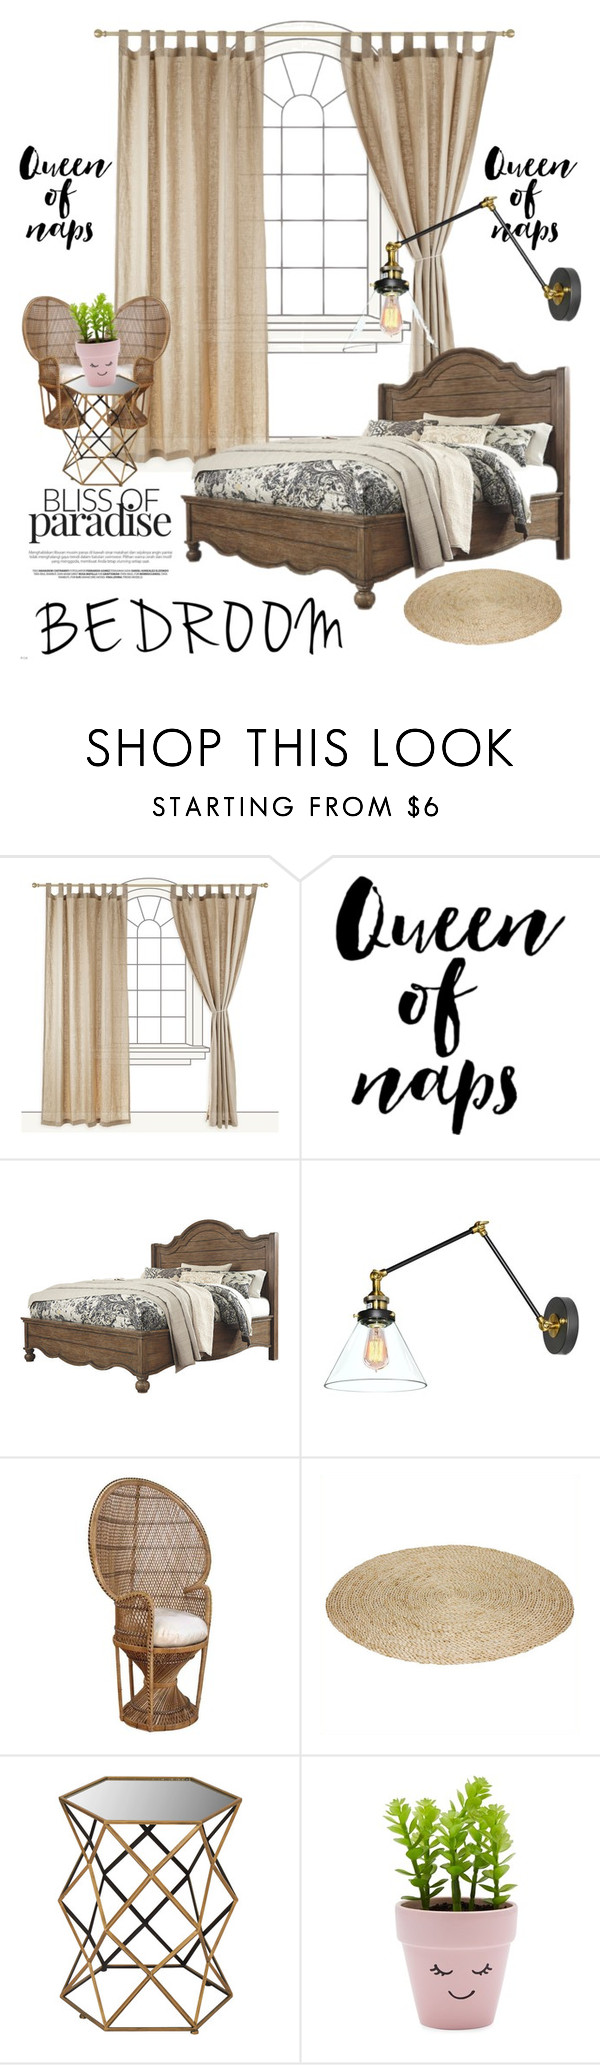 """Under £500 Bedroom ✨"" by monroeloves ❤ liked on Polyvore featuring interior, interiors, interior design, home, home decor, interior decorating, Hospitality Rattan, Dot & Bo, New Look and bedroom"